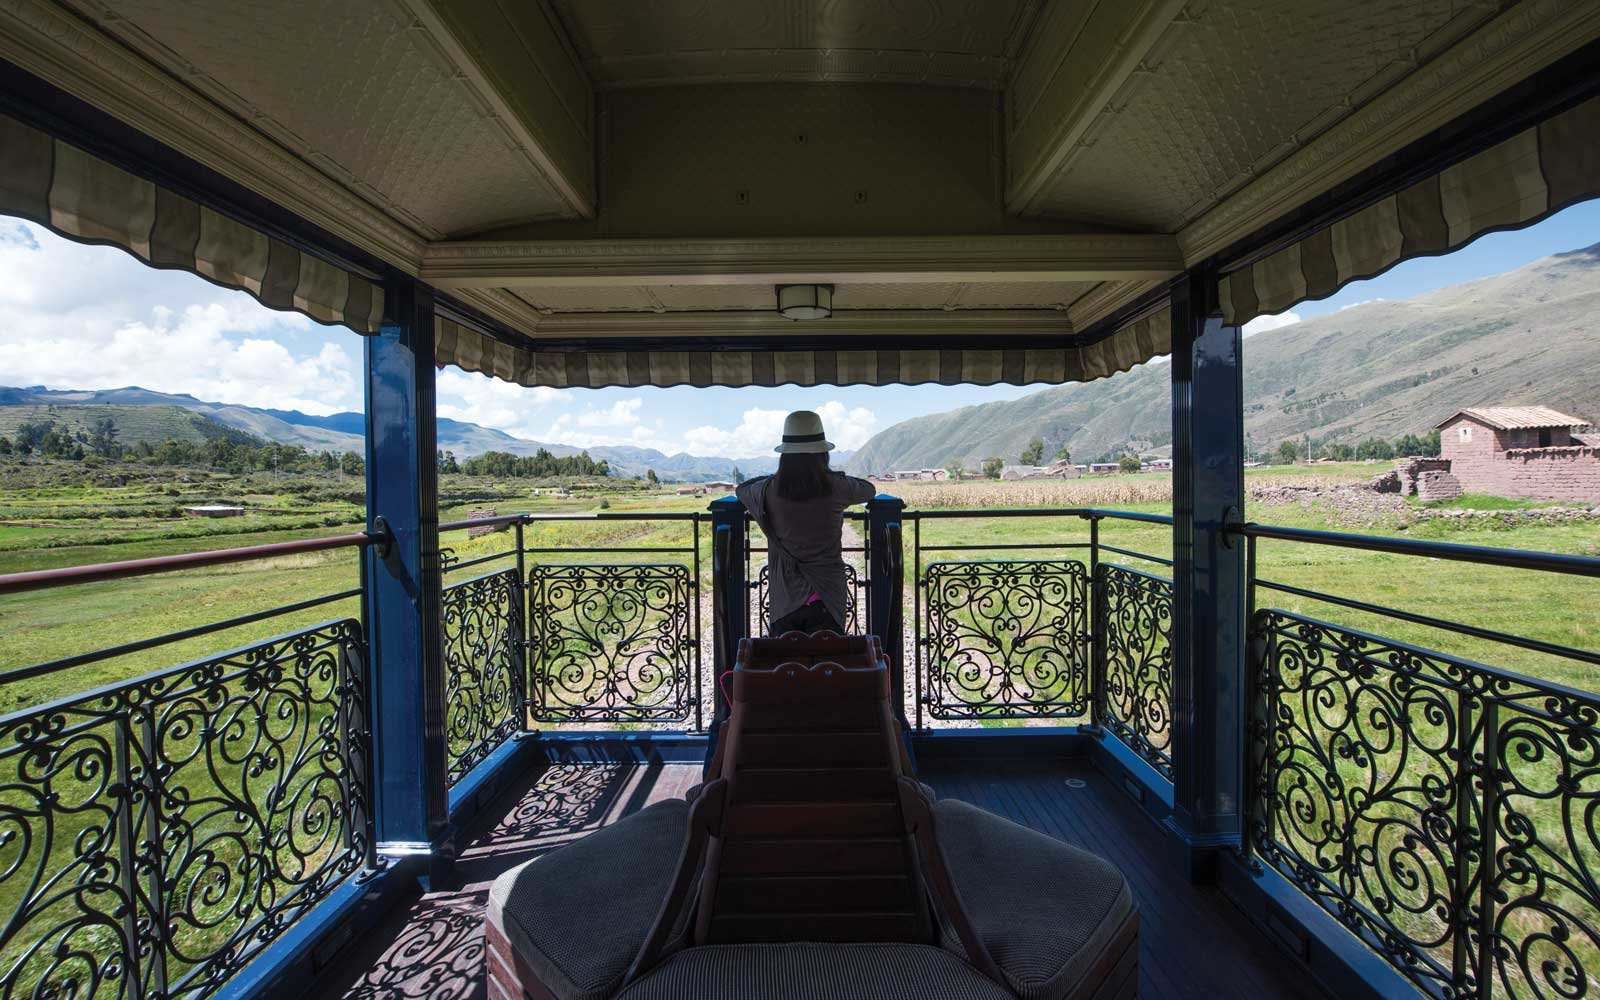 A passenger in the observation car as South America's first luxury sleeper train, Belmond Andean Explorer, passes through the Cusco region of Peru, during its journey between Arequipa, Lake Titicaca and Cusco.